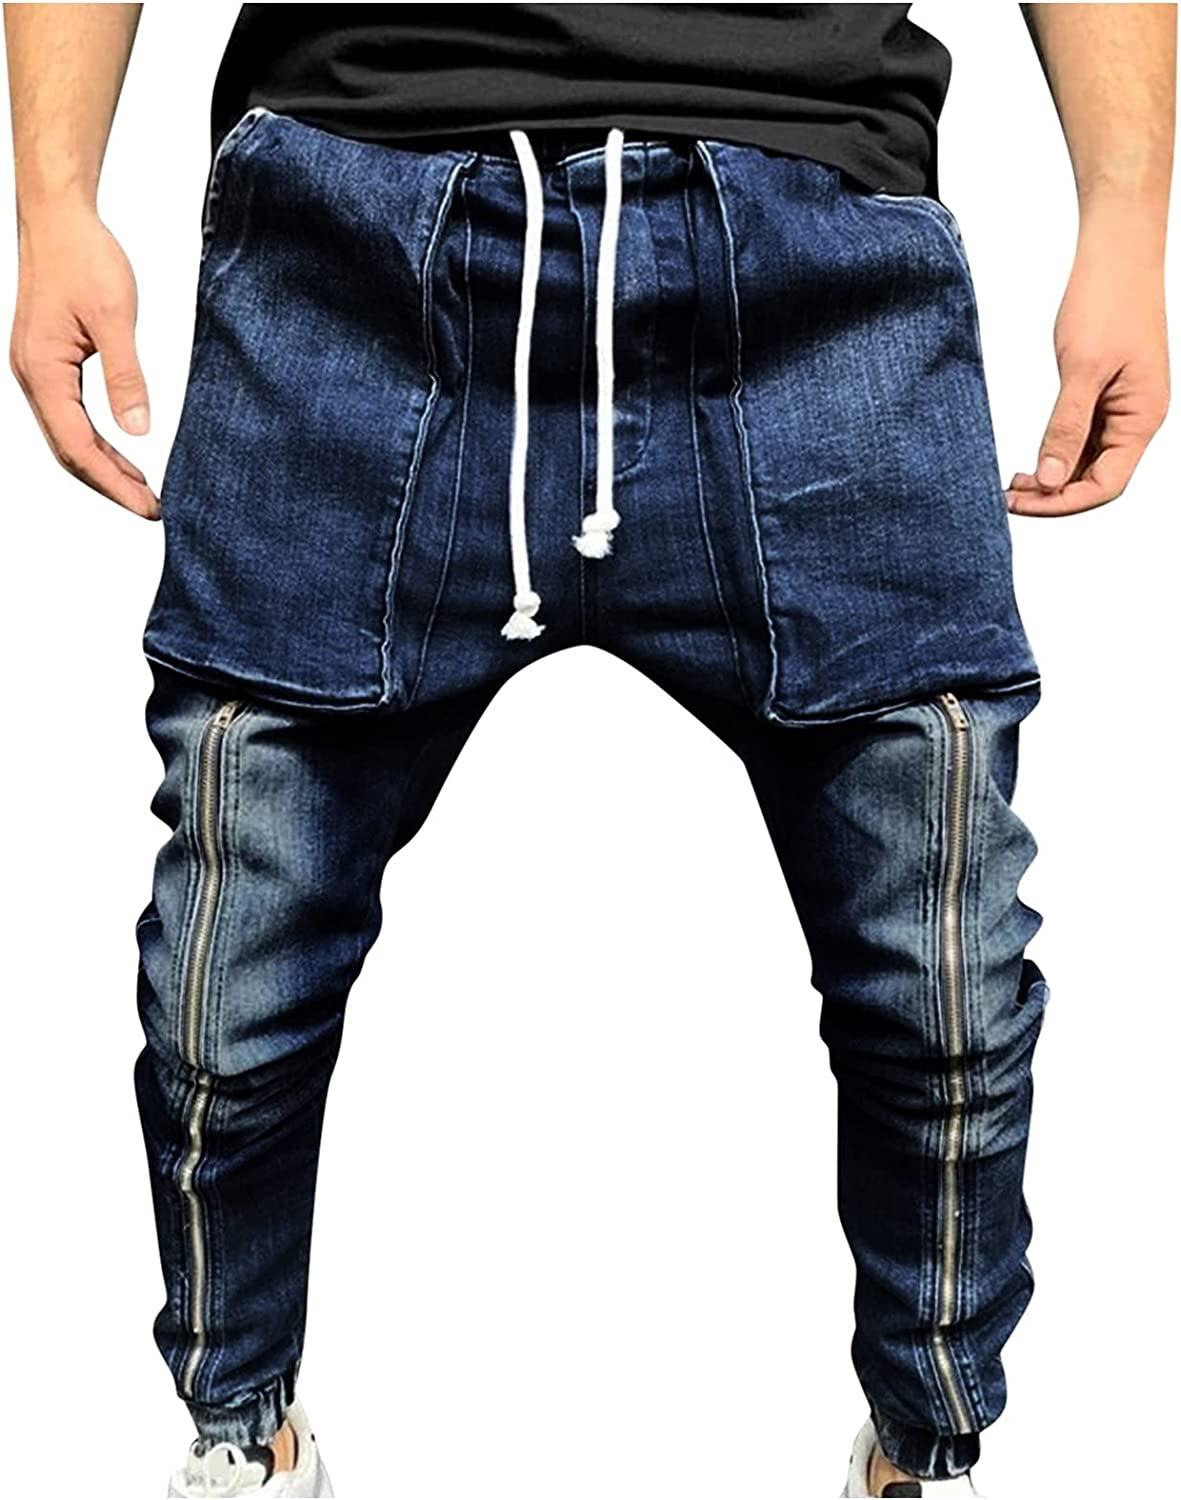 aihihe Mens Baggy Jeans Loose Fit Straight Wide Leg Stitching Denim Pants Relaxed Fit Trousers Streetwear